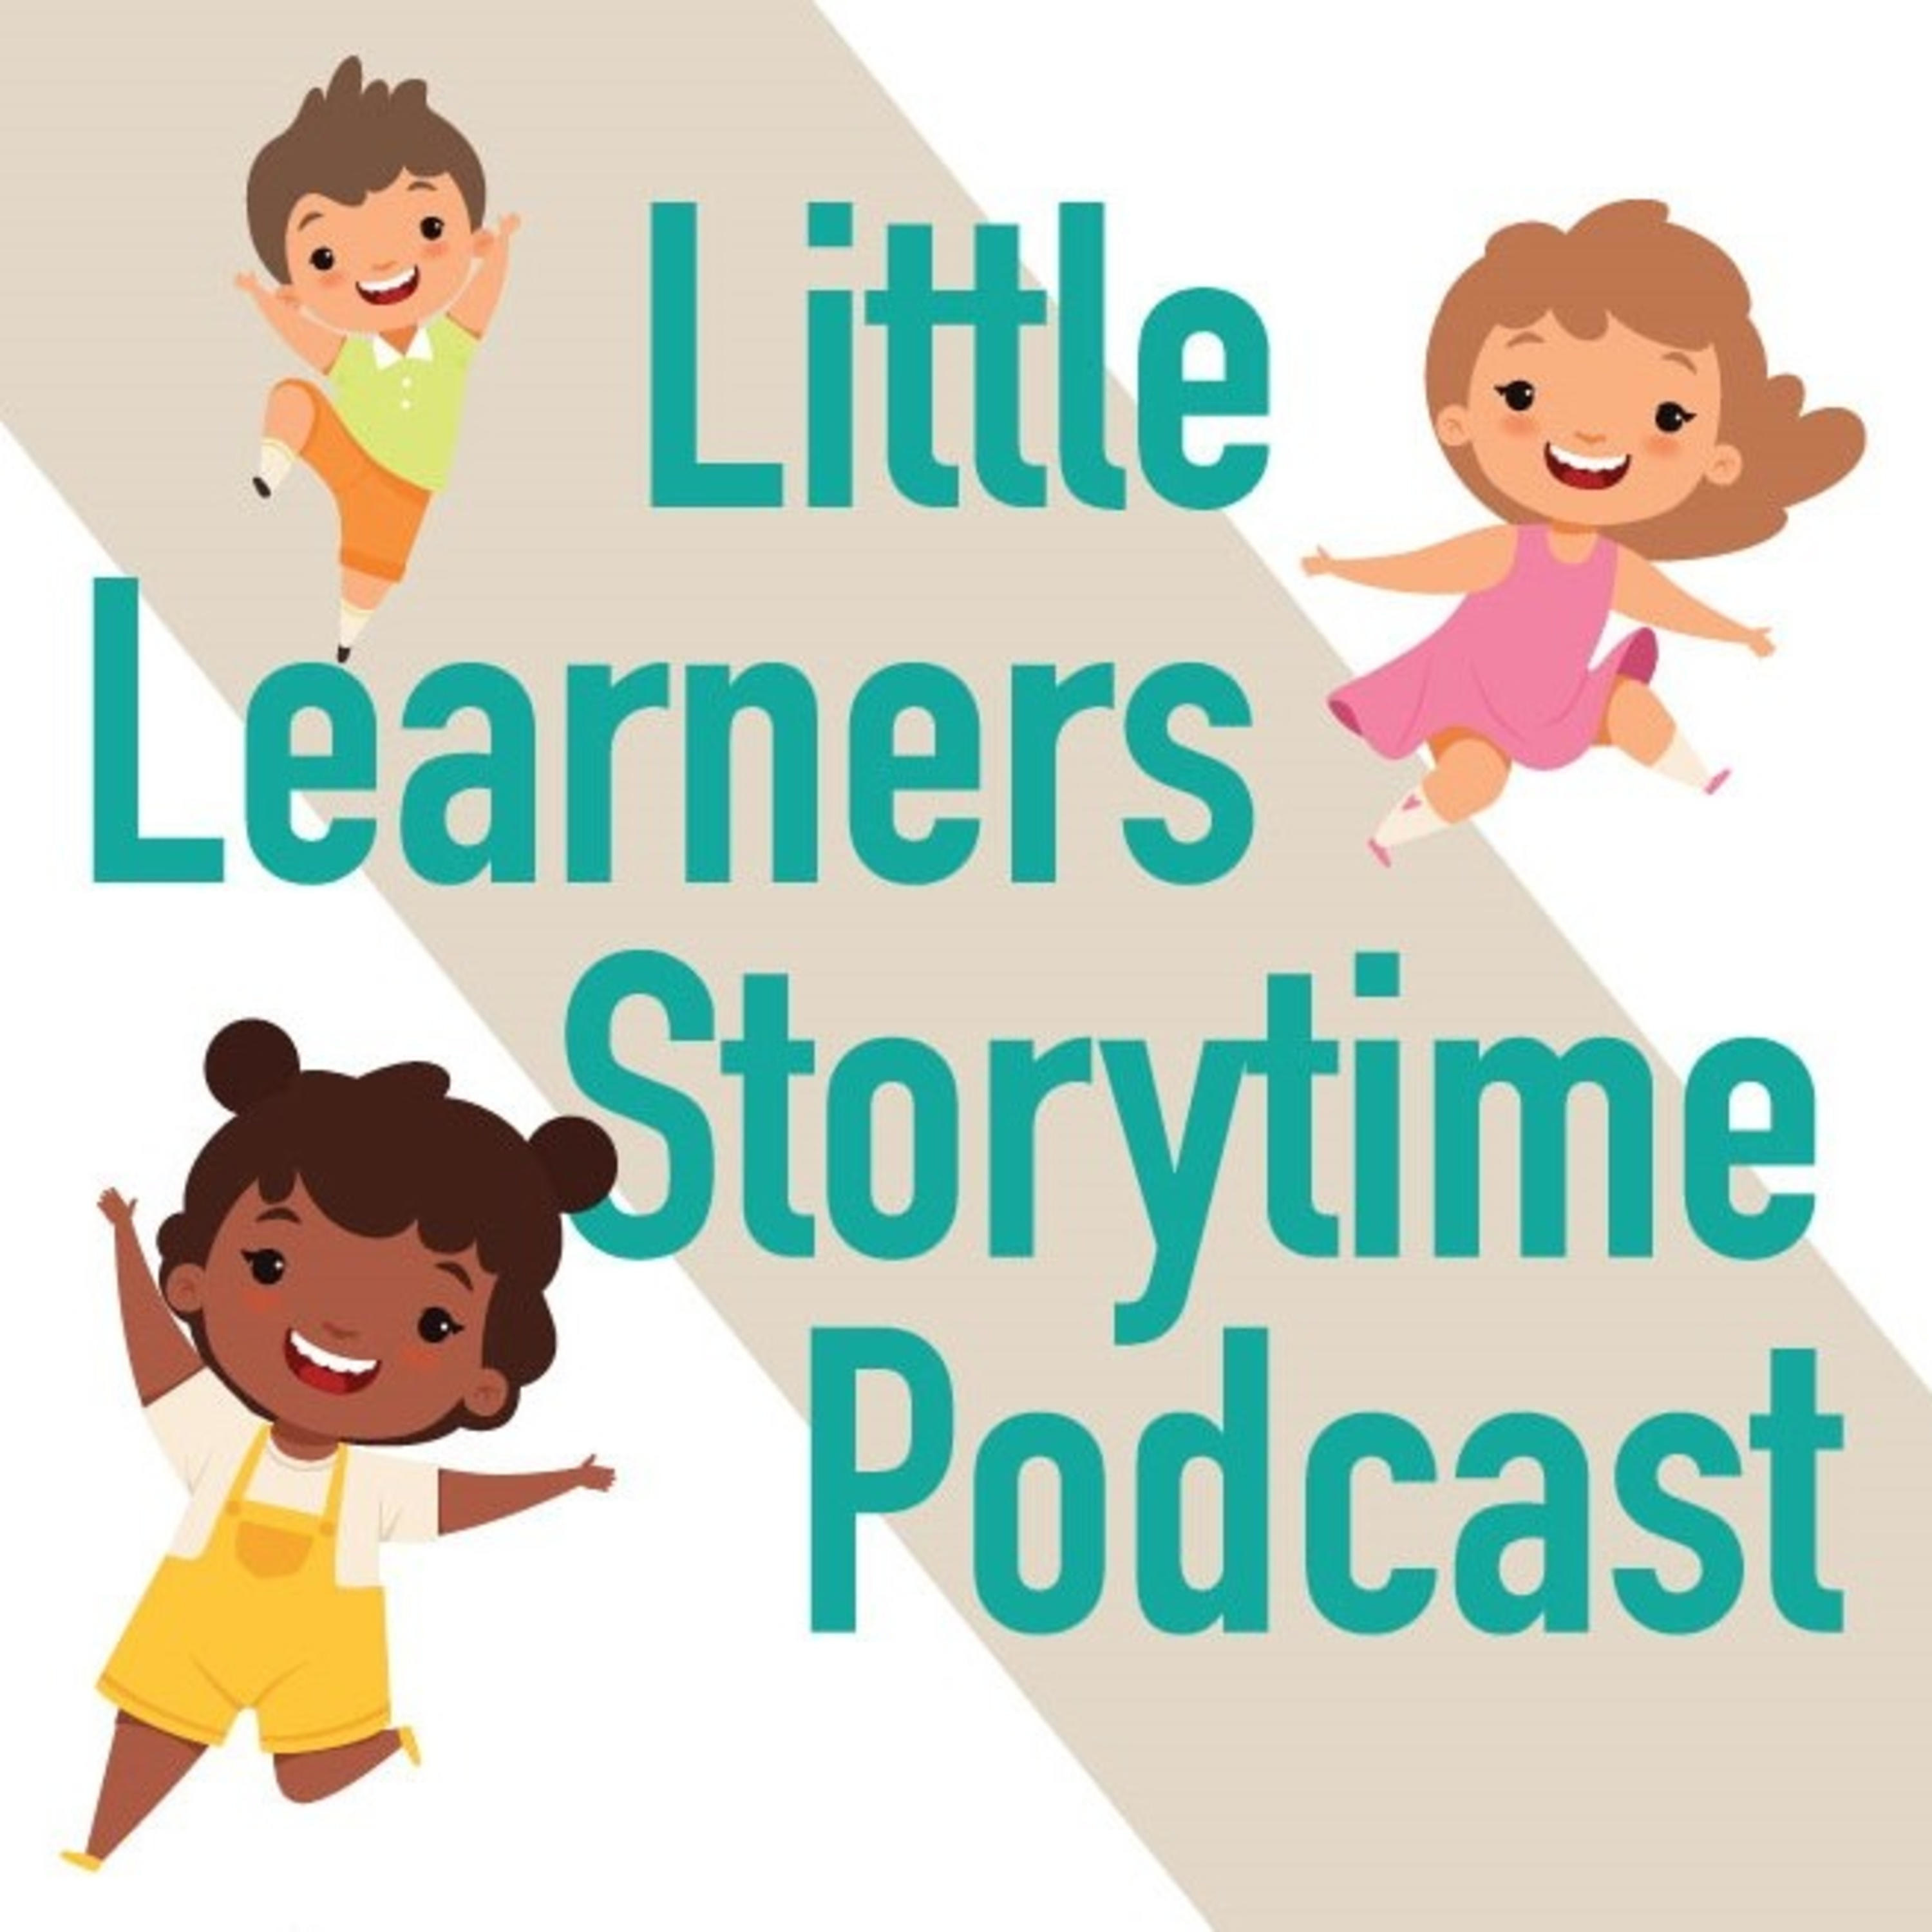 Little Learners Storytime Podcast